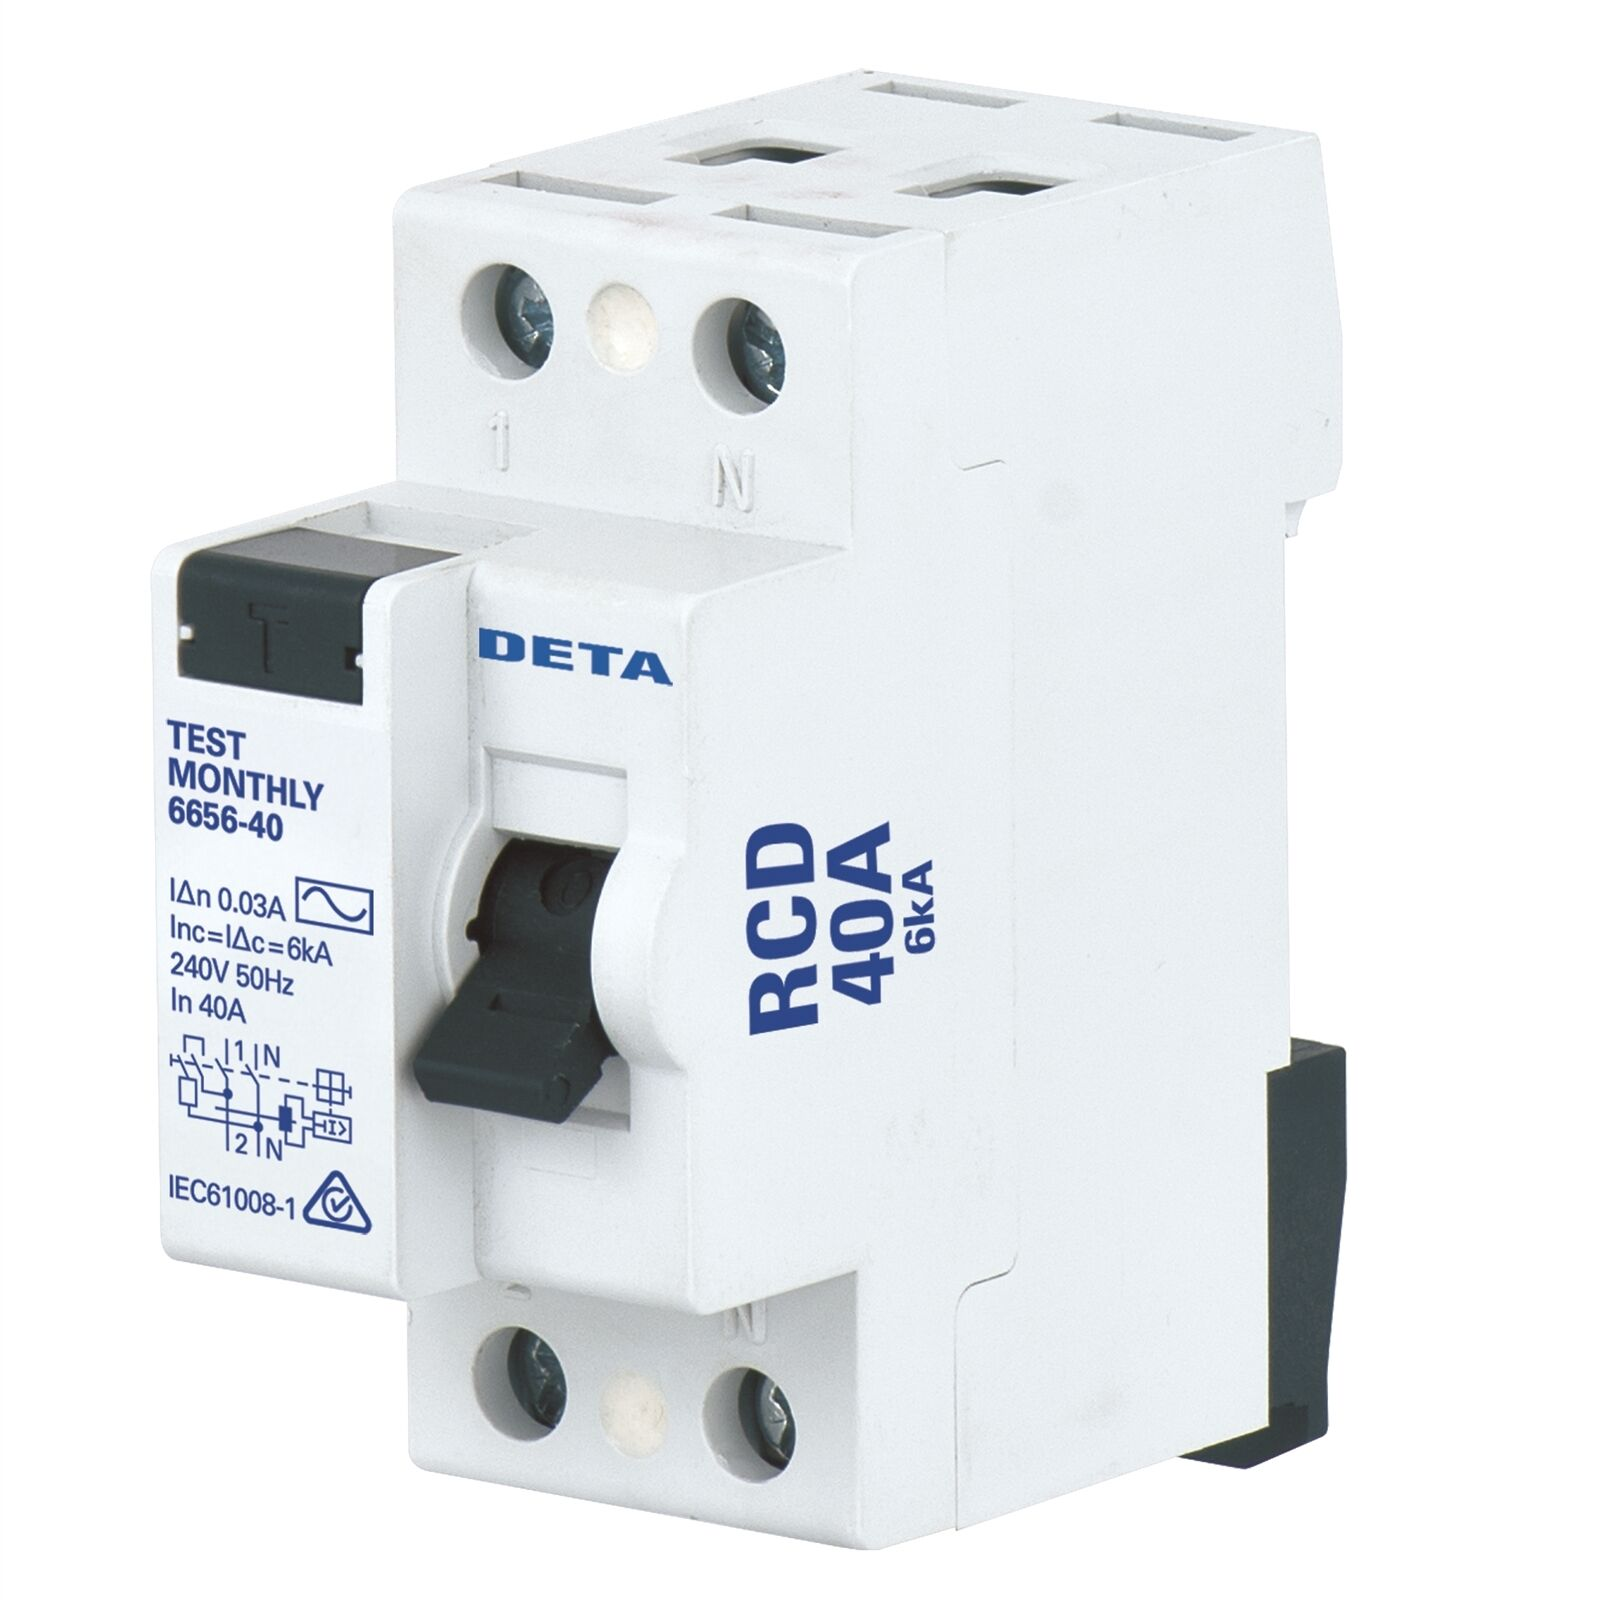 Deta RESIDUAL CIRCUIT BREAKER 40A Predects Against Earth Fault Current AUS Brand